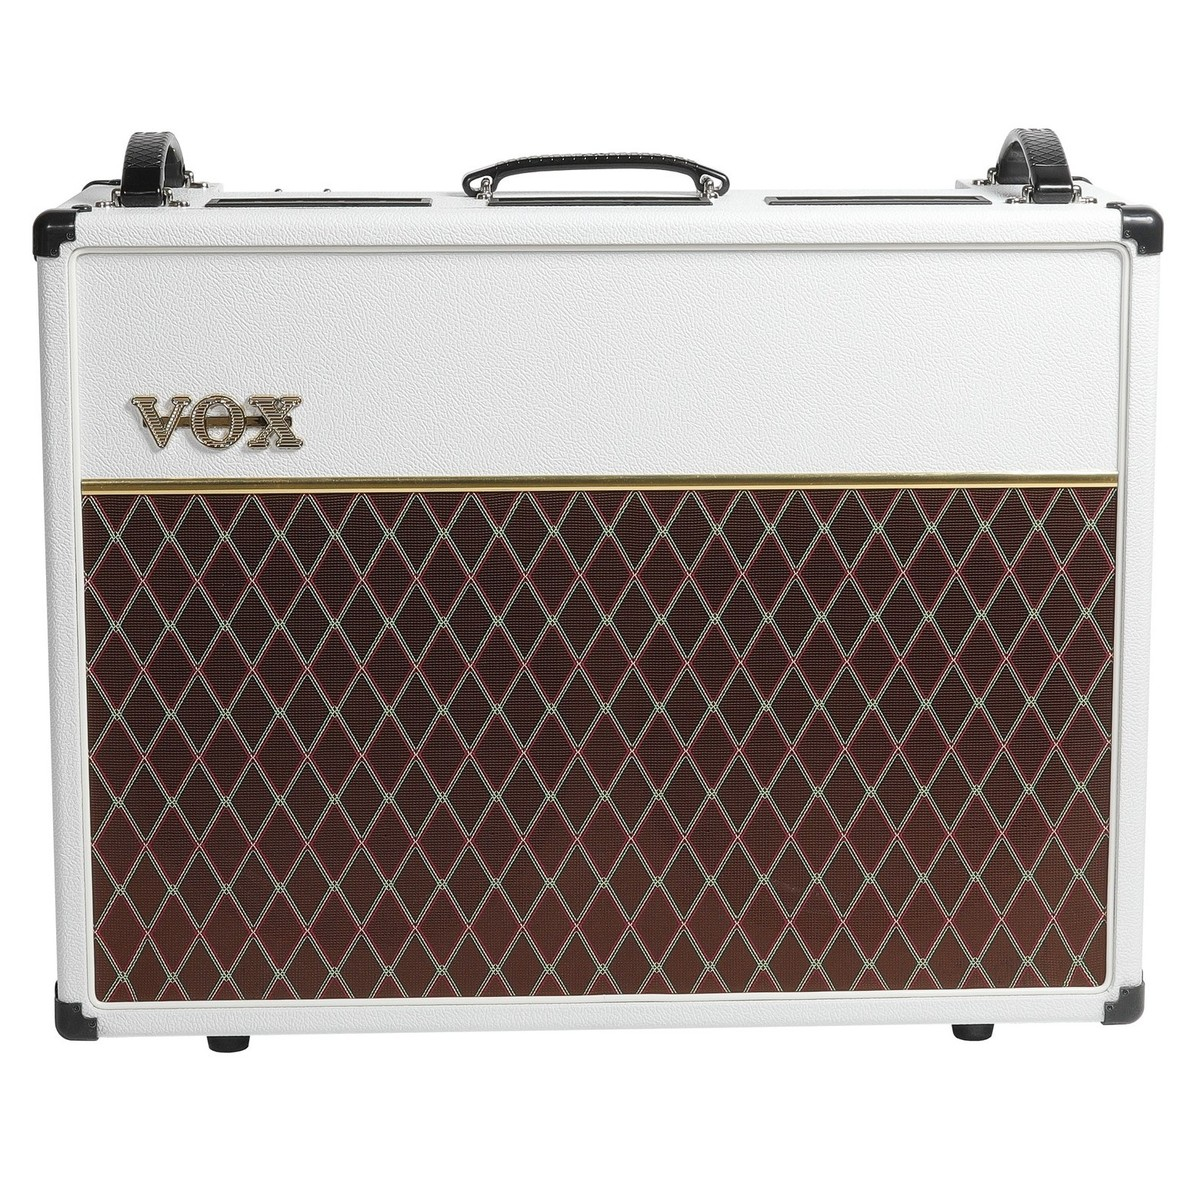 vox ac30c2 limited edition guitar combo amp white bronco at gear4music. Black Bedroom Furniture Sets. Home Design Ideas